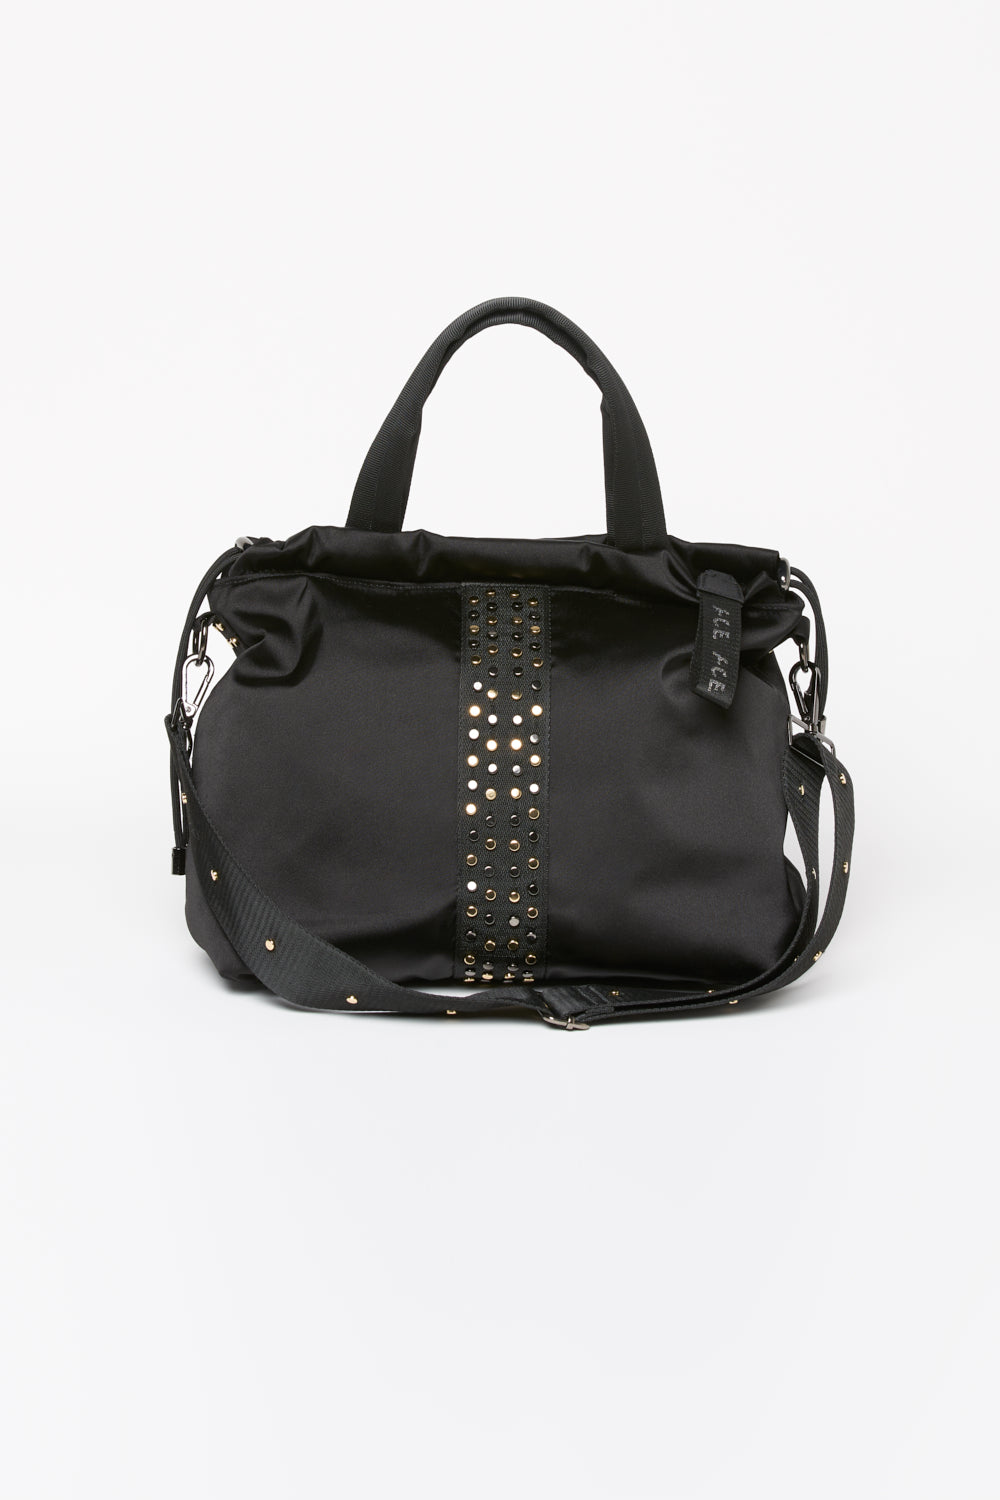 ACE Urban Tote Bag Black